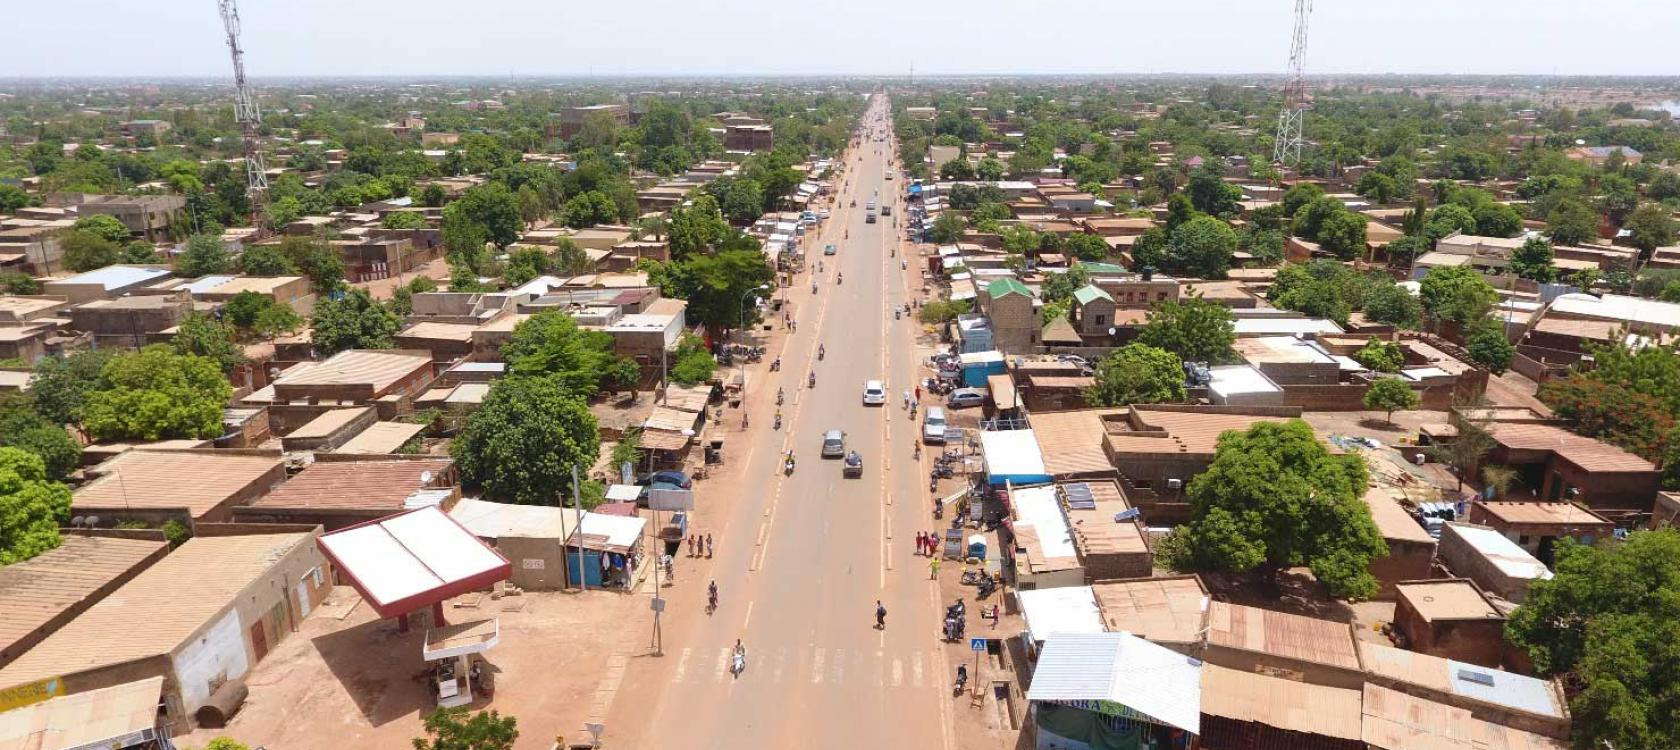 Resurfaced road, Ouagadougou, Burkina Faso